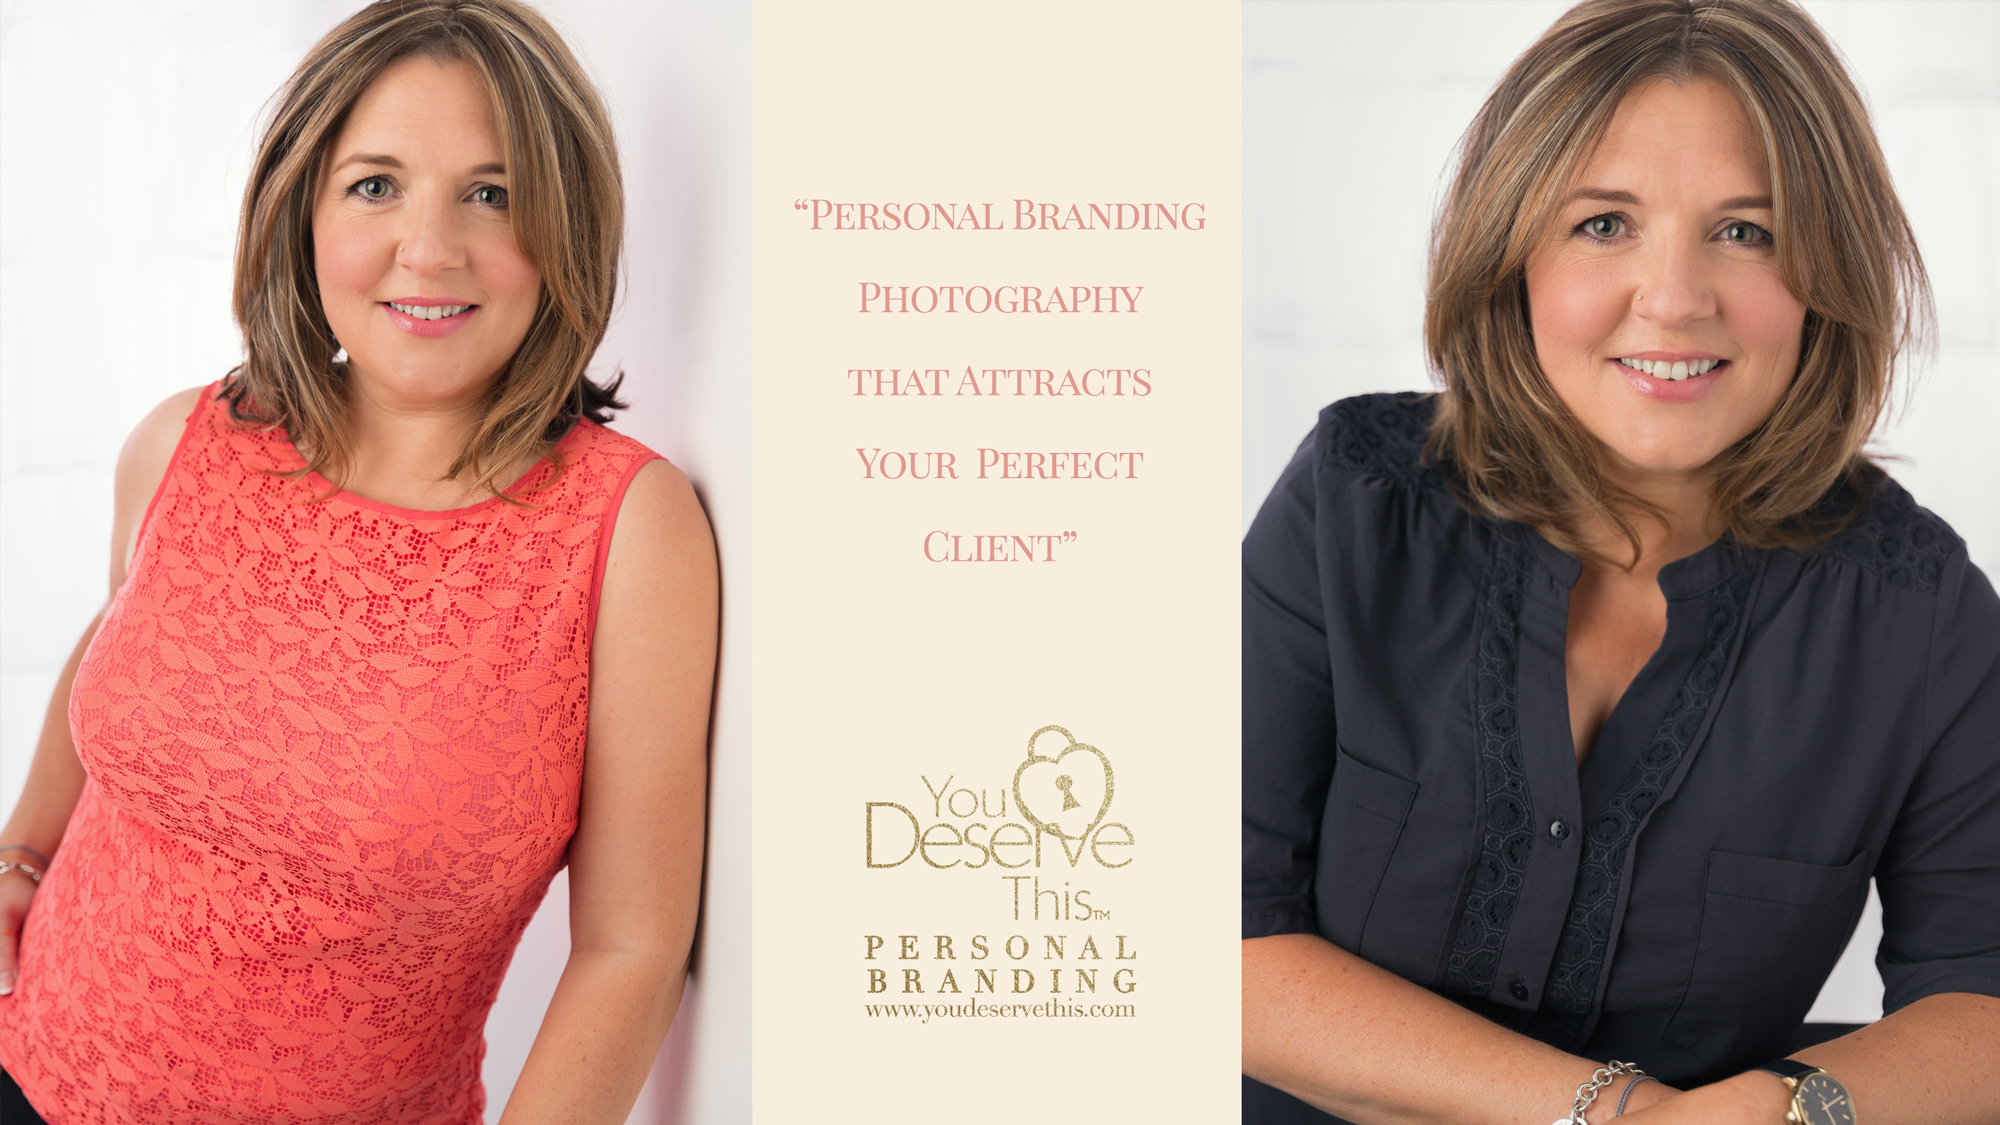 Personal Branding Photography that attracts your perfect client. Caroline is a Life Coach based in North Hampshire. Contact us to update your business portraits.  youdeservethis.com